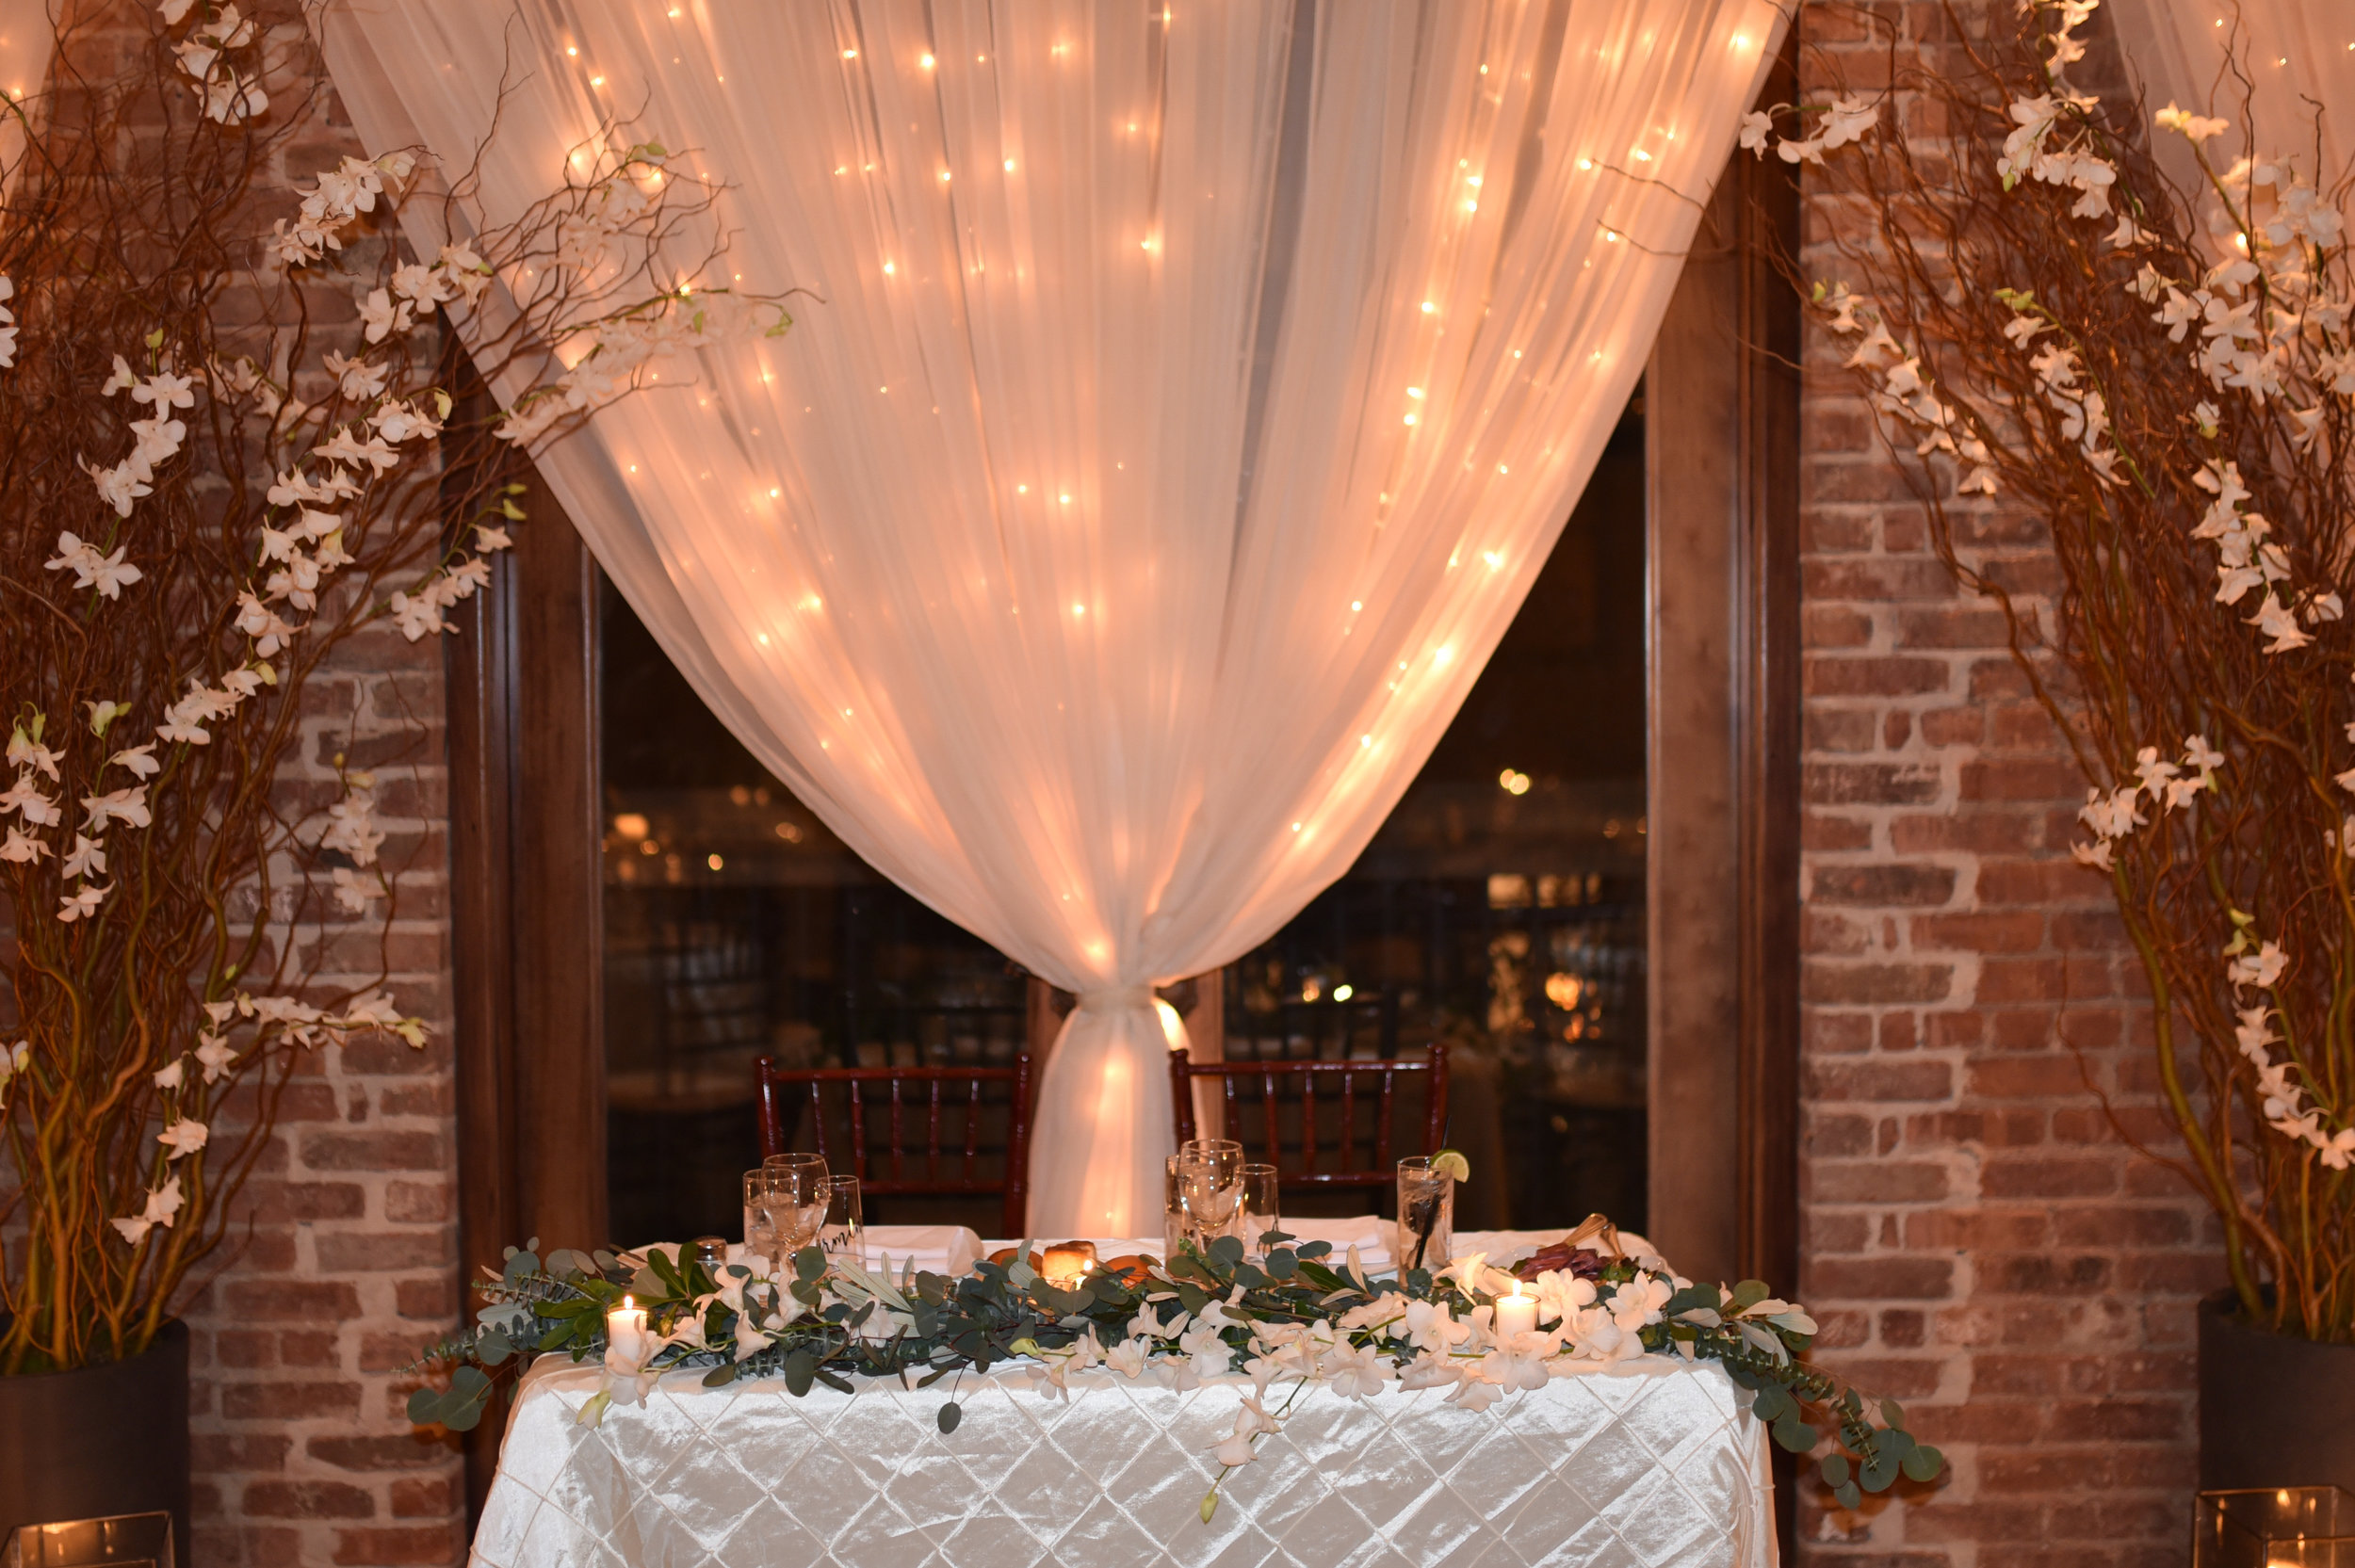 The eucalyptus garland at the sweetheart table is radiantly lit under curly willow and white orchids